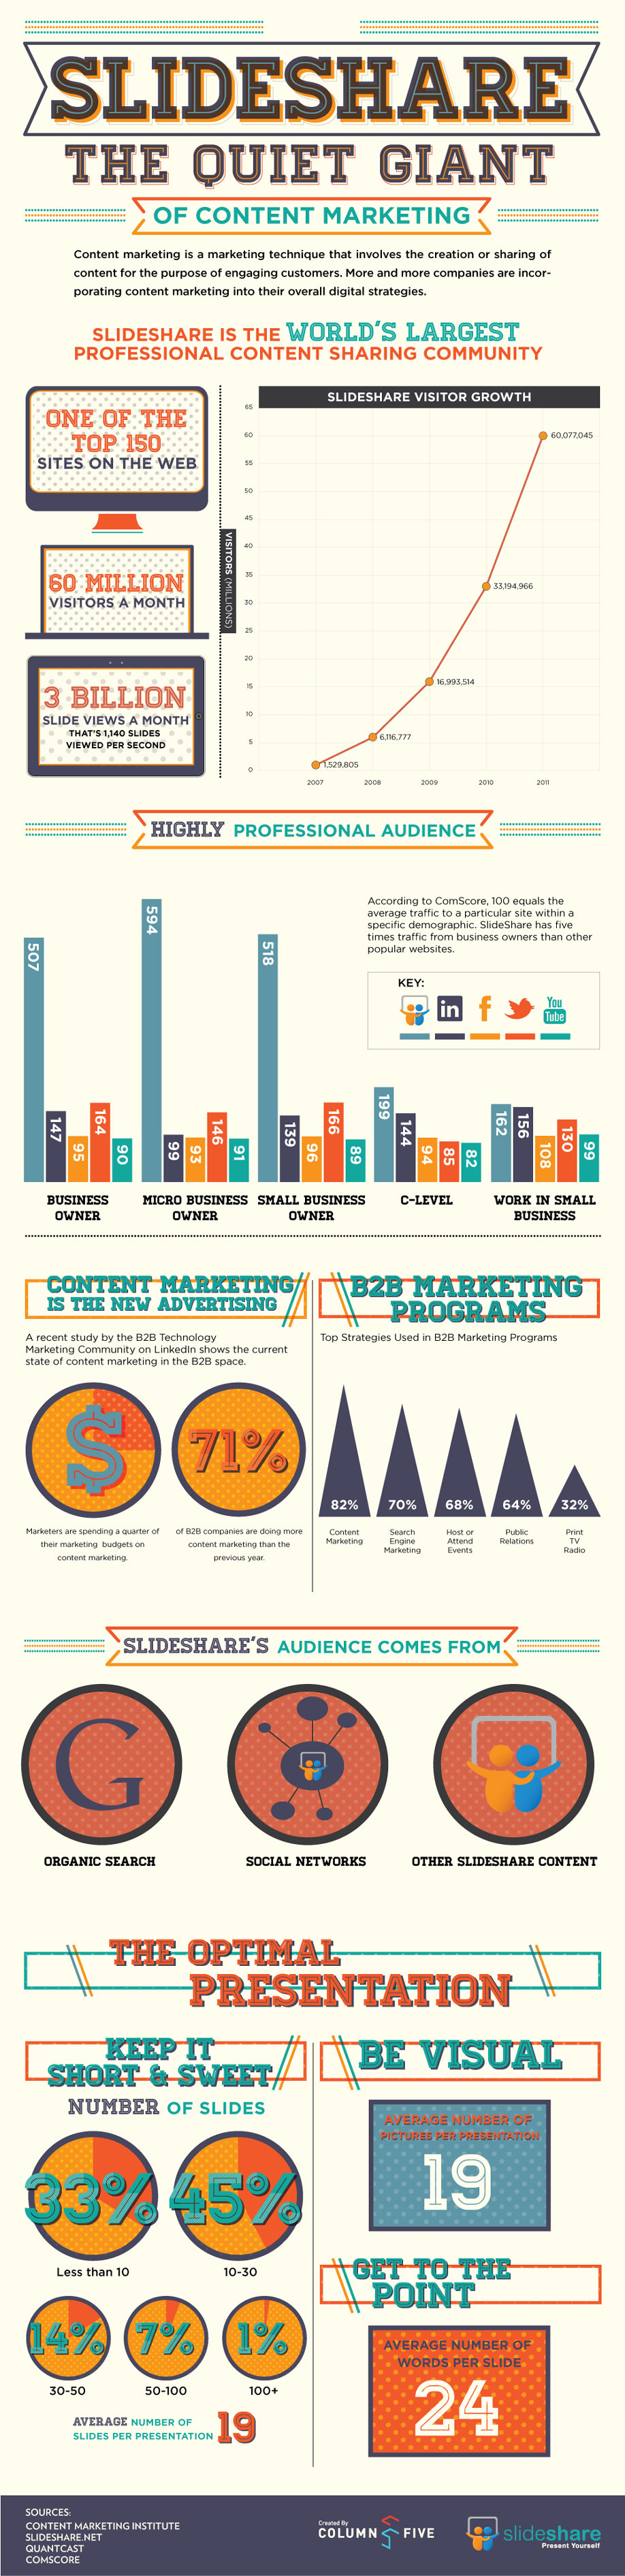 Infographic: The Quiet Giant of Content Marketing